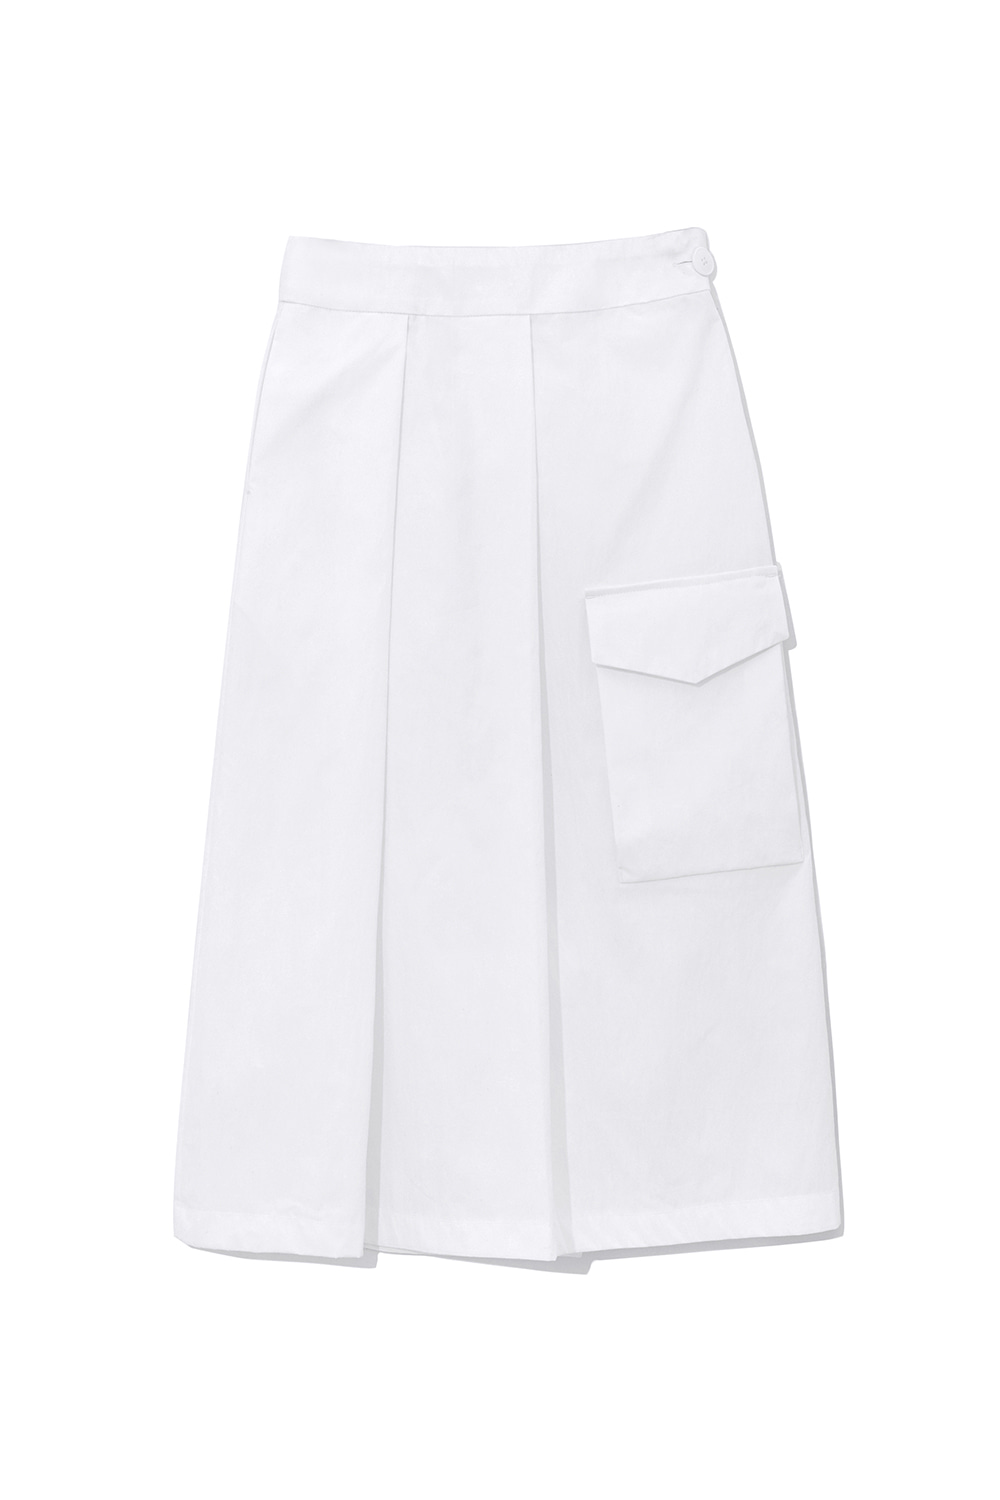 Pleats Pocket Skirts Women [White] -40%